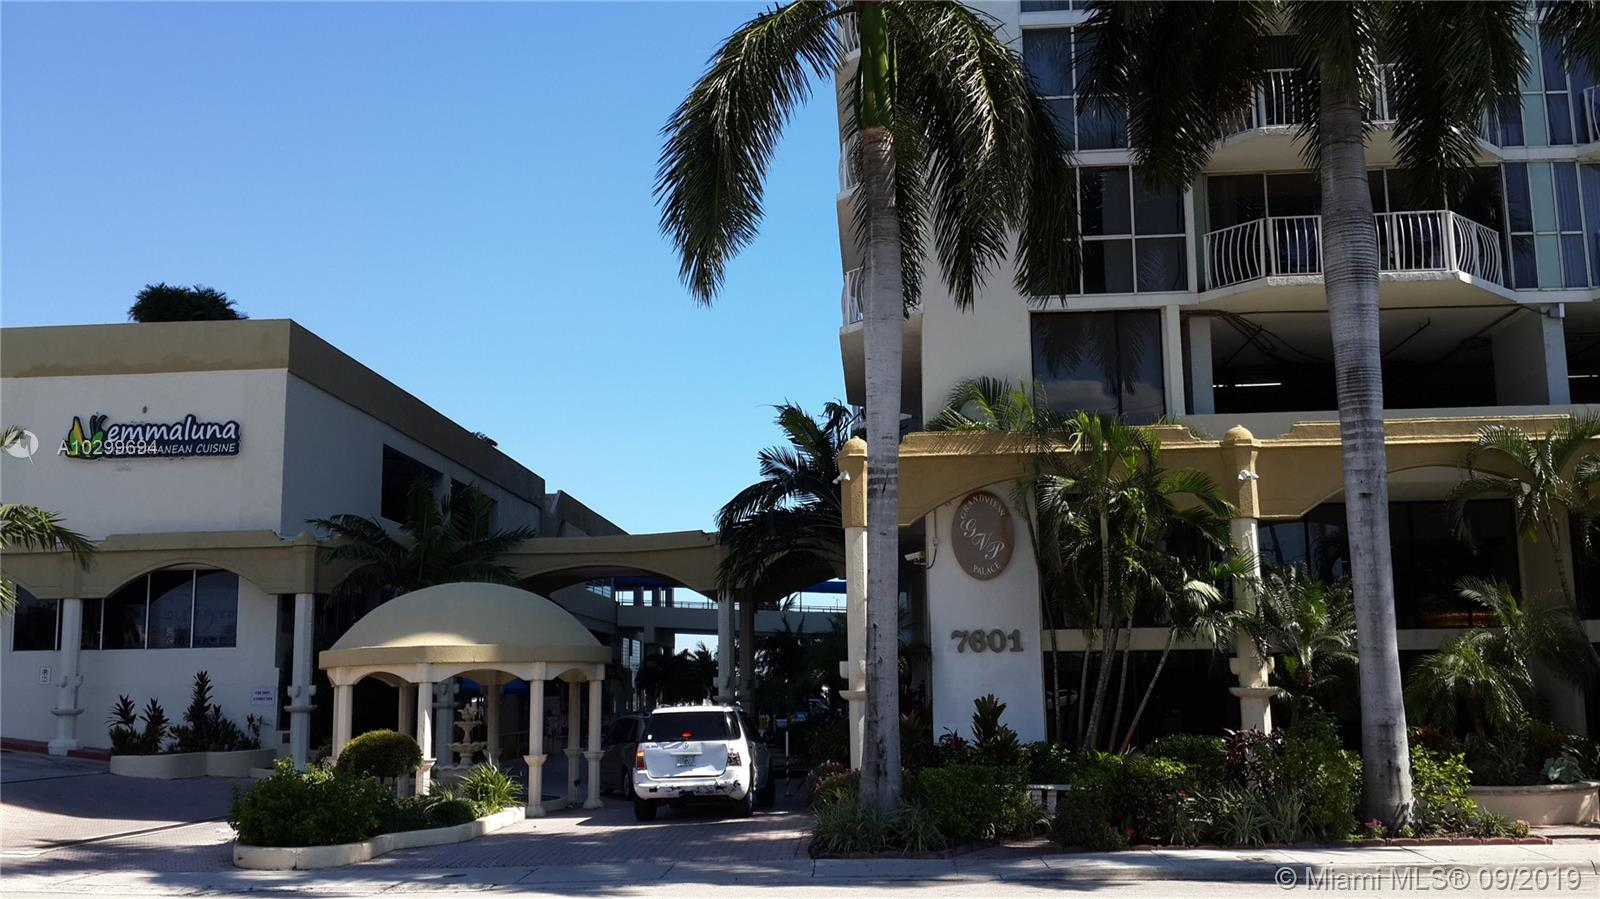 7601 E Treasure Dr #1701 For Sale A10299694, FL